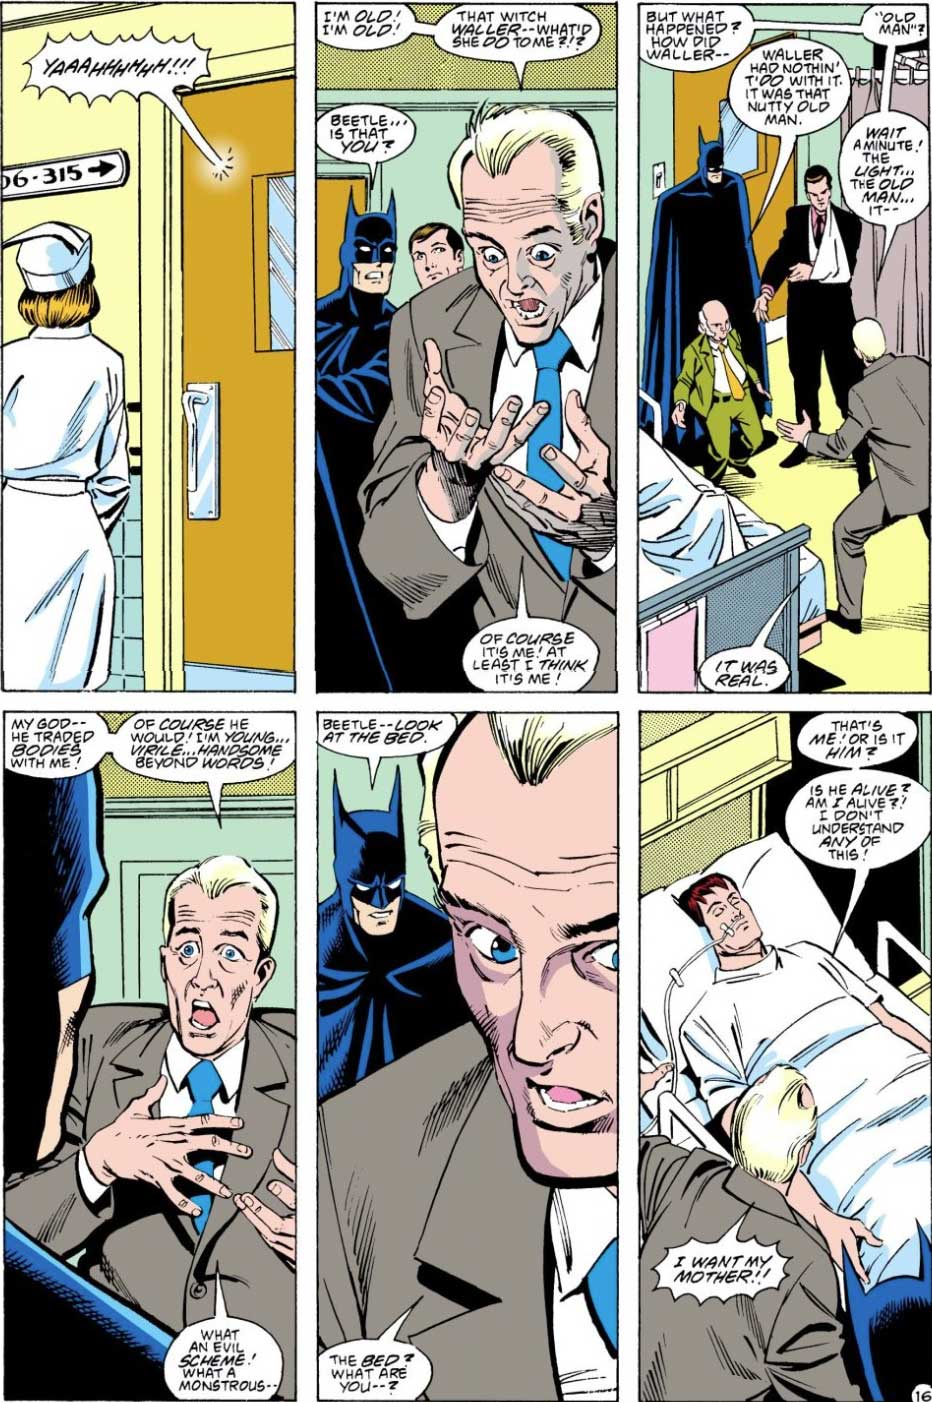 Justice League America #29 by Keith Giffen, J.M. DeMatteis, Ty Templeton, and Joe Rubinstein